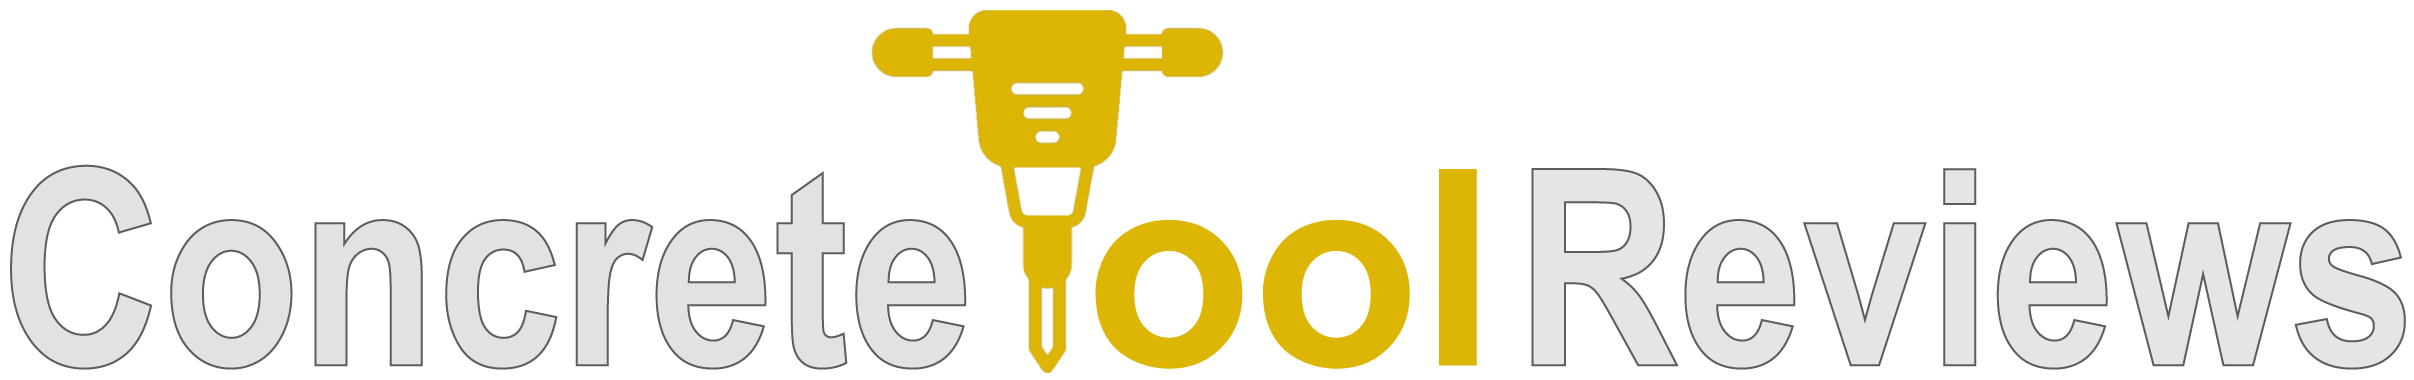 Concrete Tool Reviews